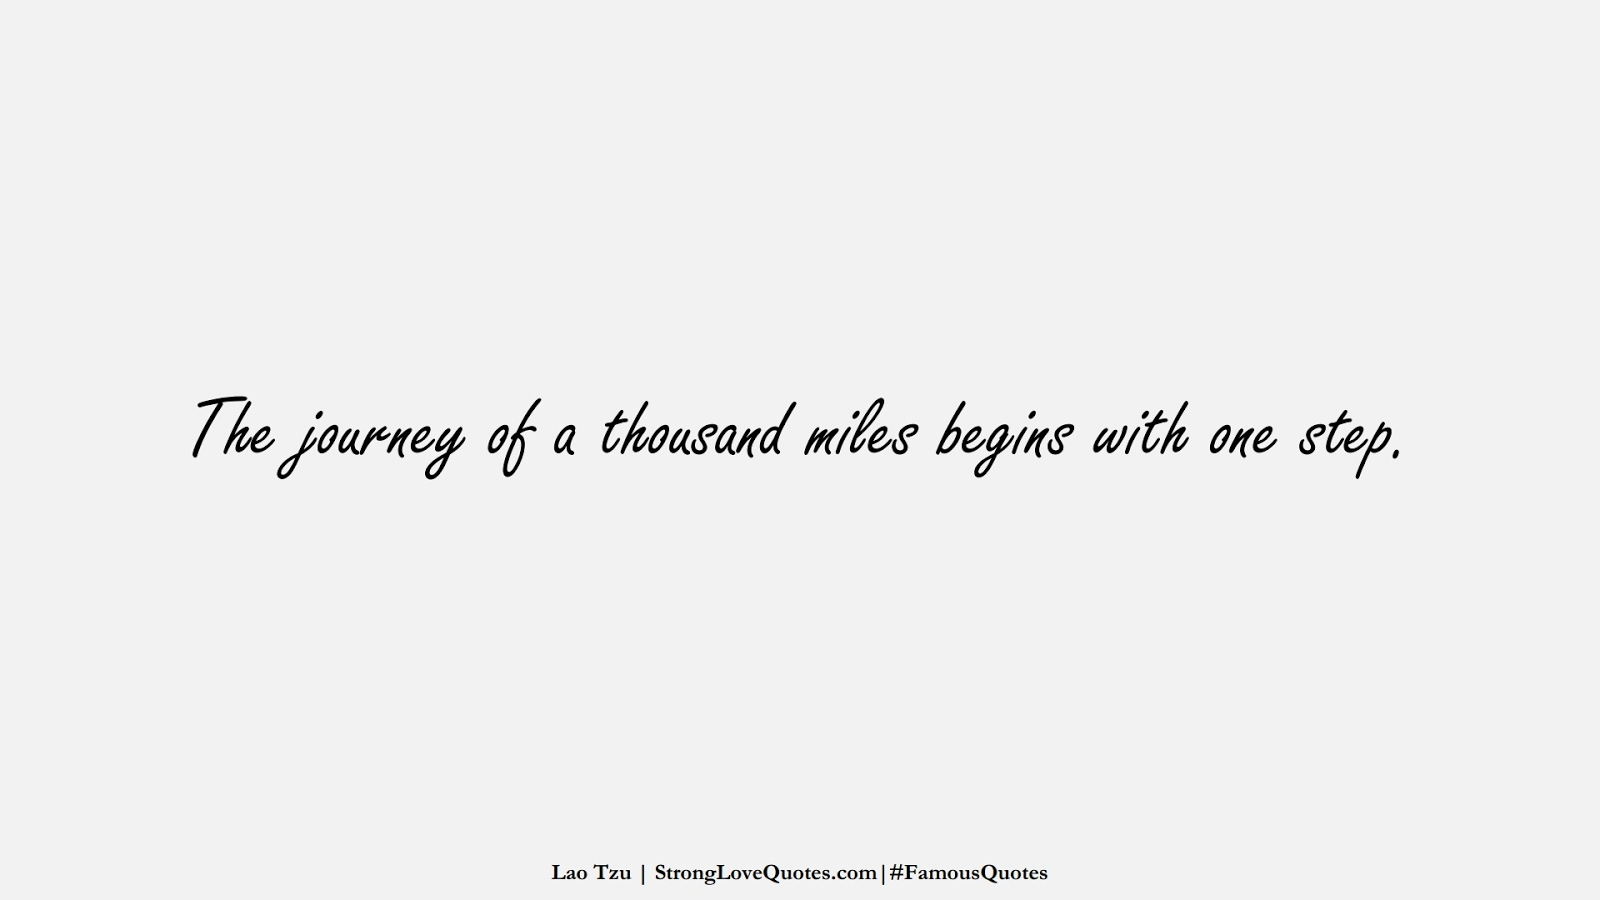 The journey of a thousand miles begins with one step. (Lao Tzu);  #FamousQuotes